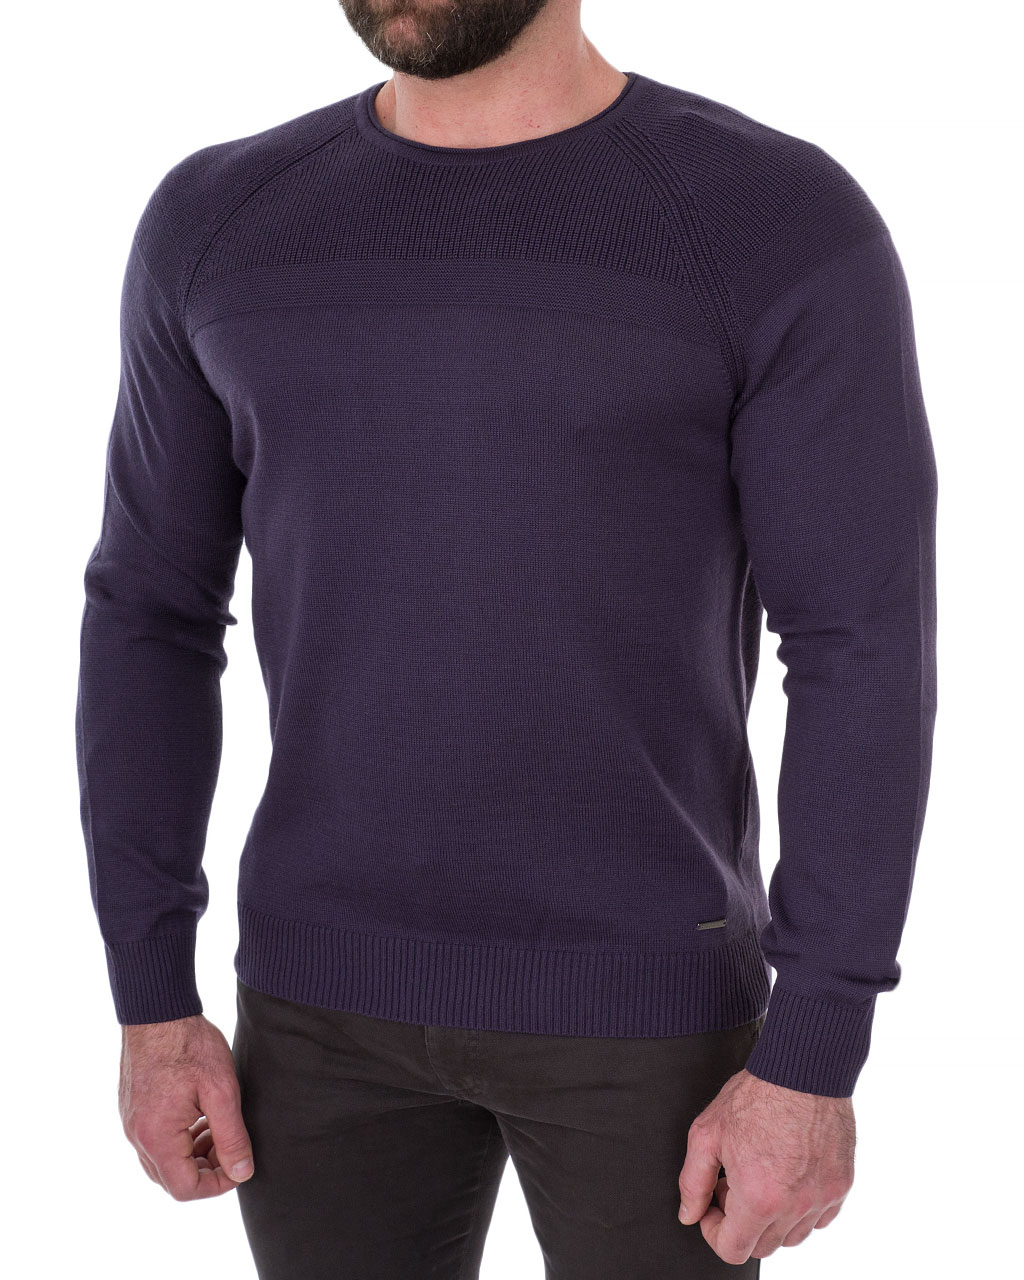 Men's jumper 7450-45532-860/19-20--2 (1)